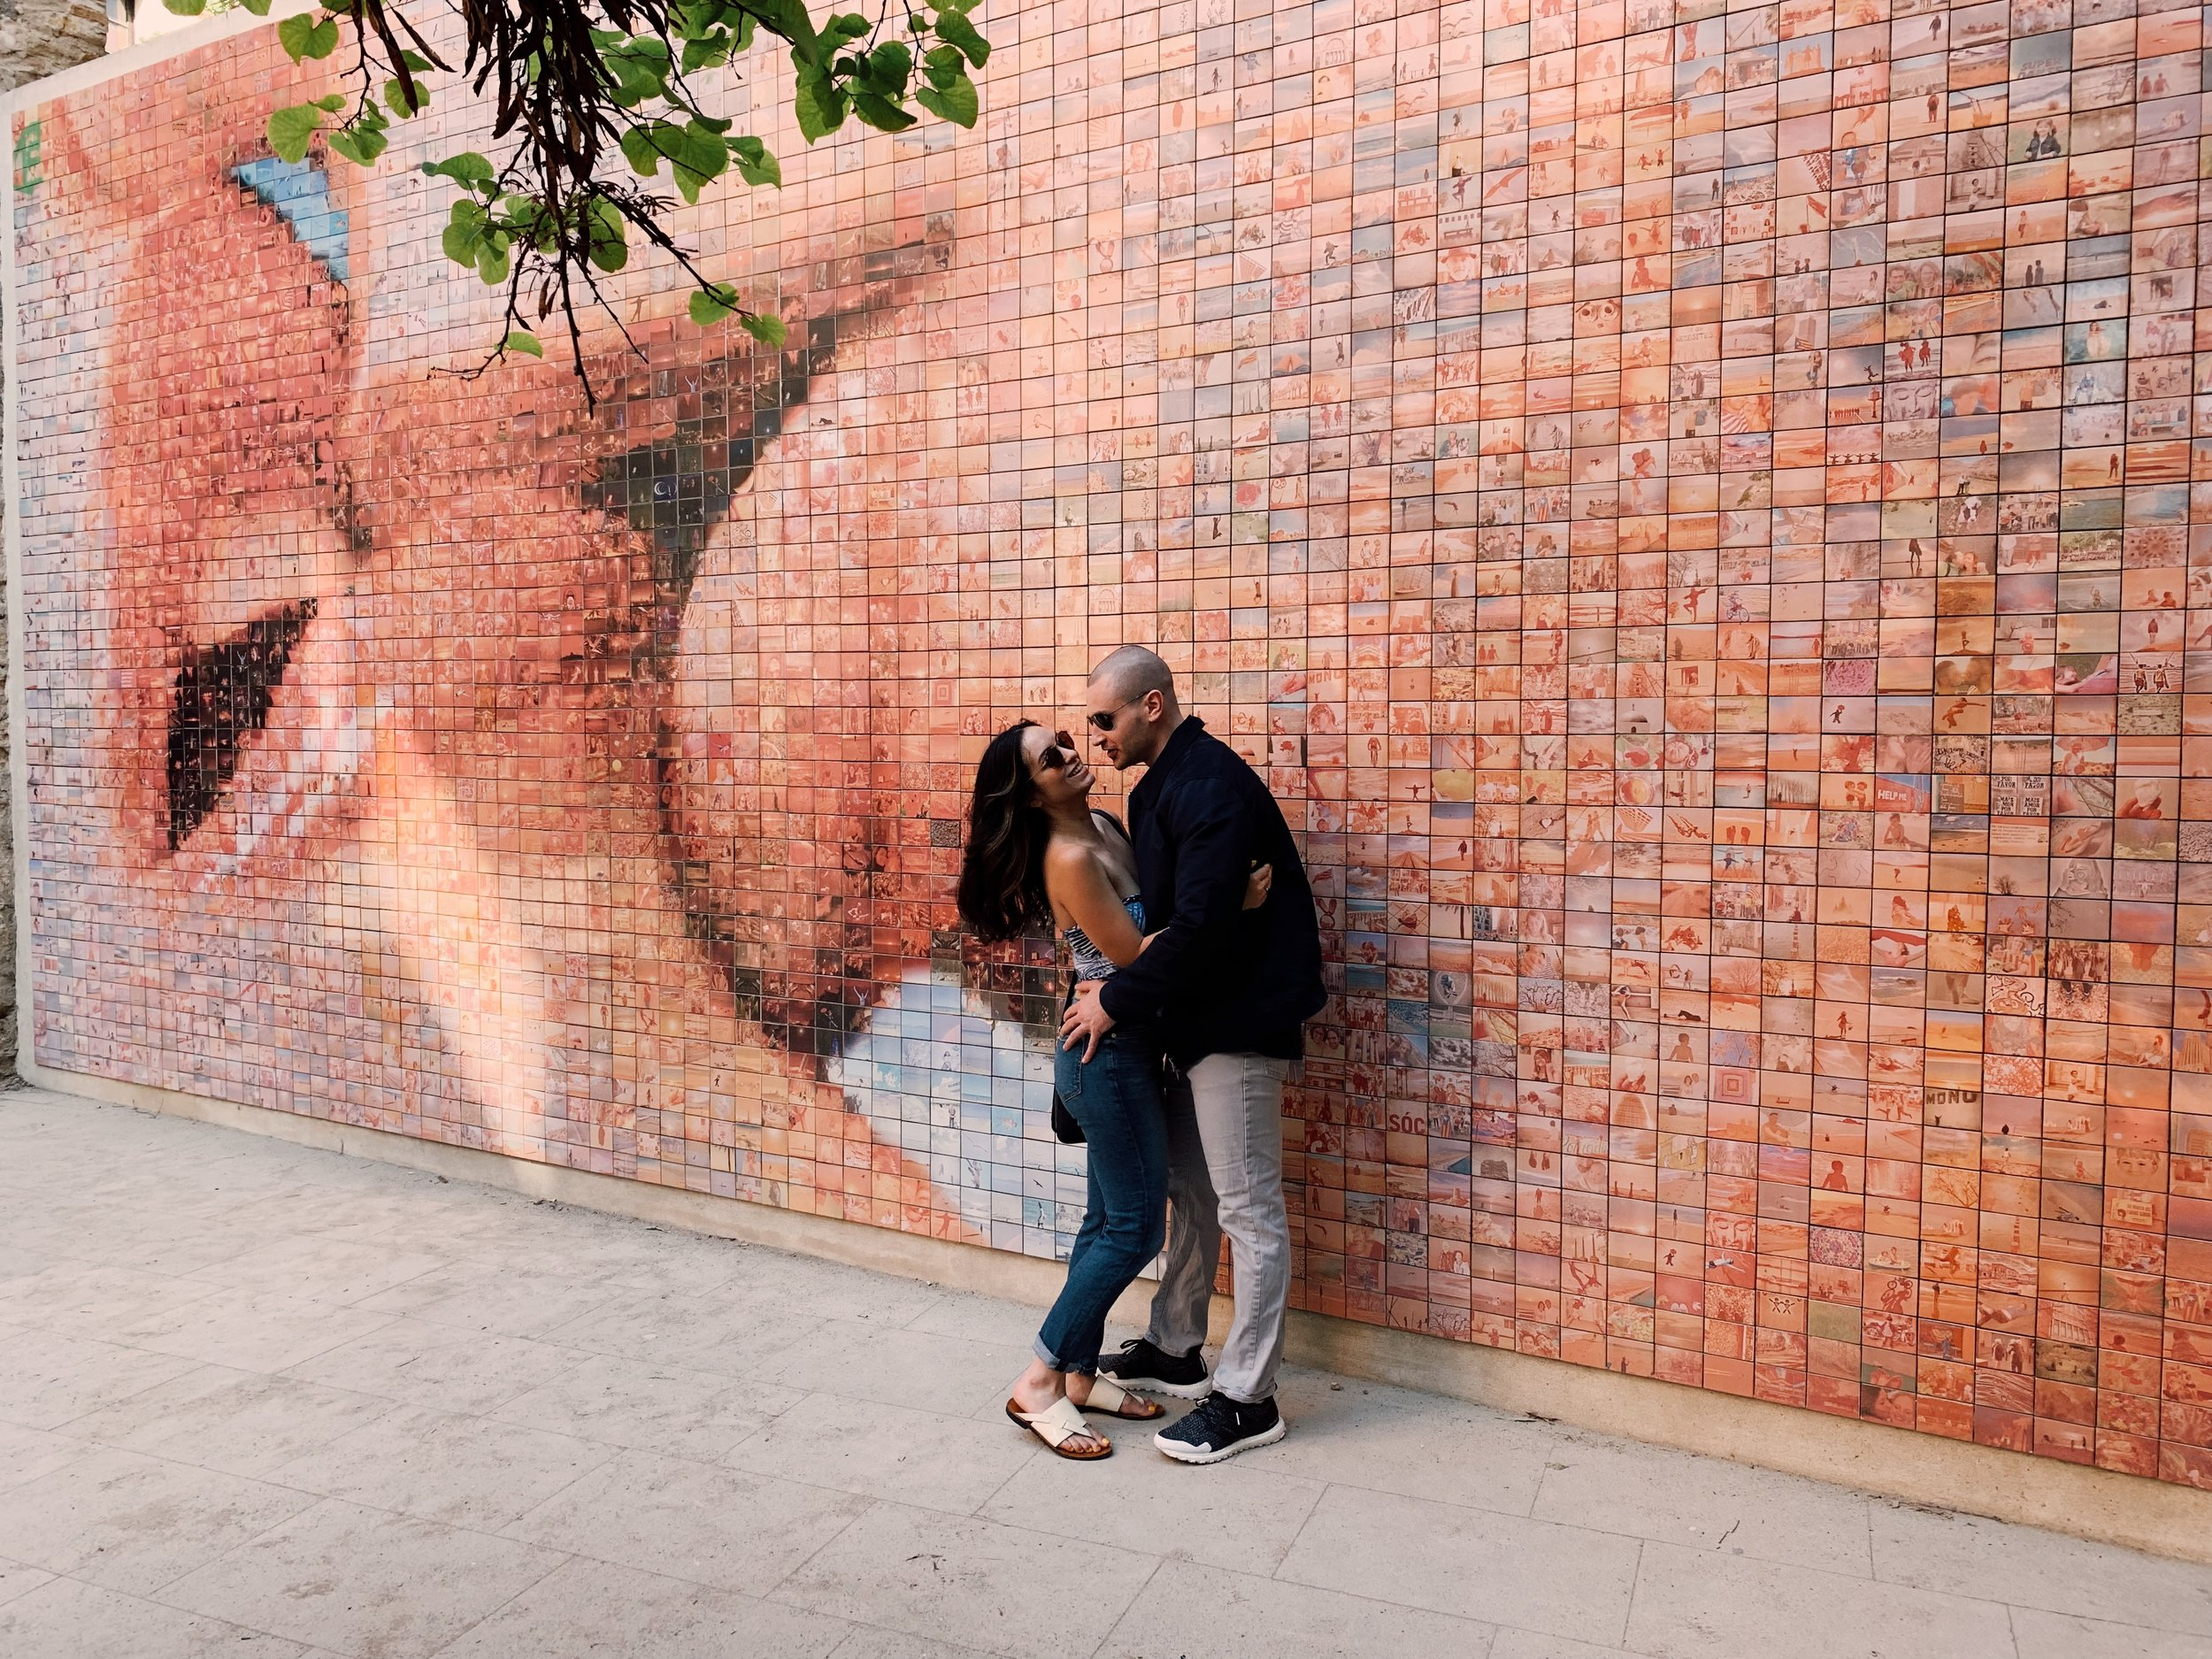 """""""The World Begins With Every Kiss"""" mural in Barcelona, Spain."""